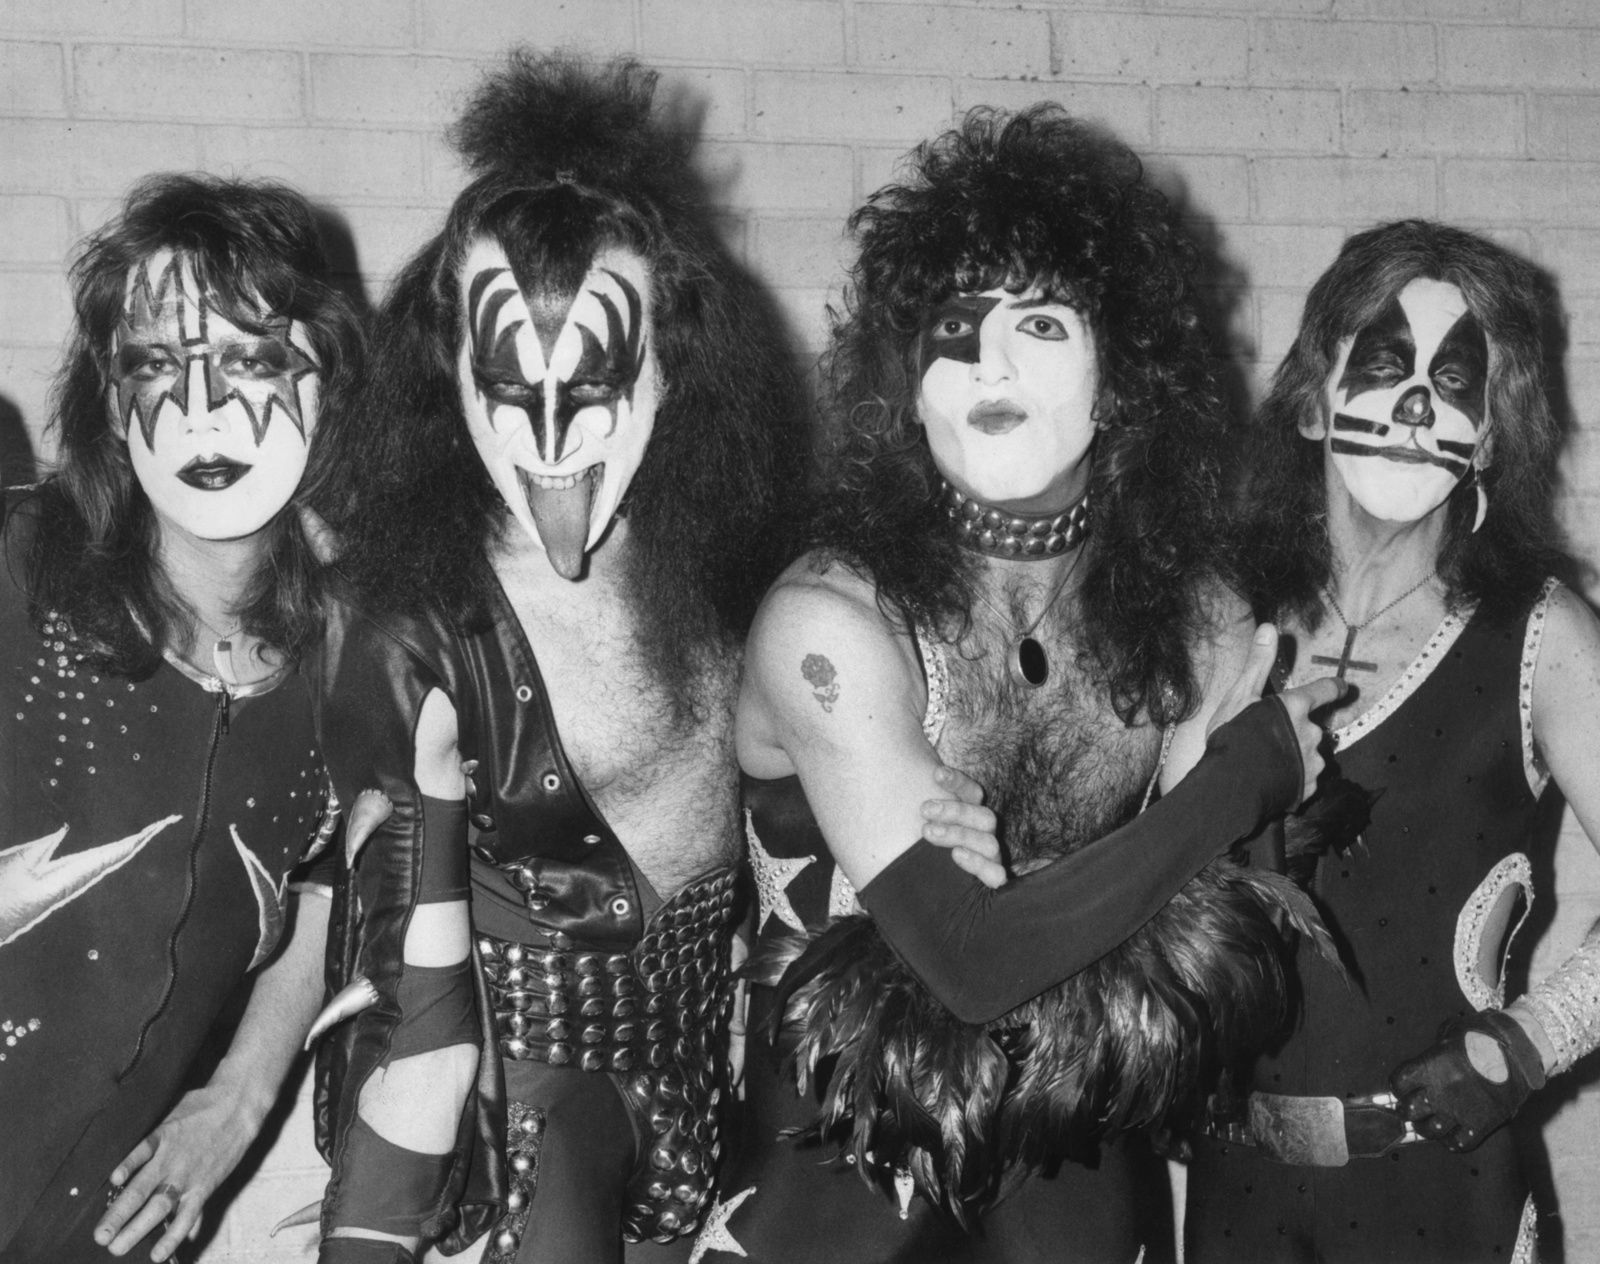 Gene Simmons - KISS - credit: Getty images